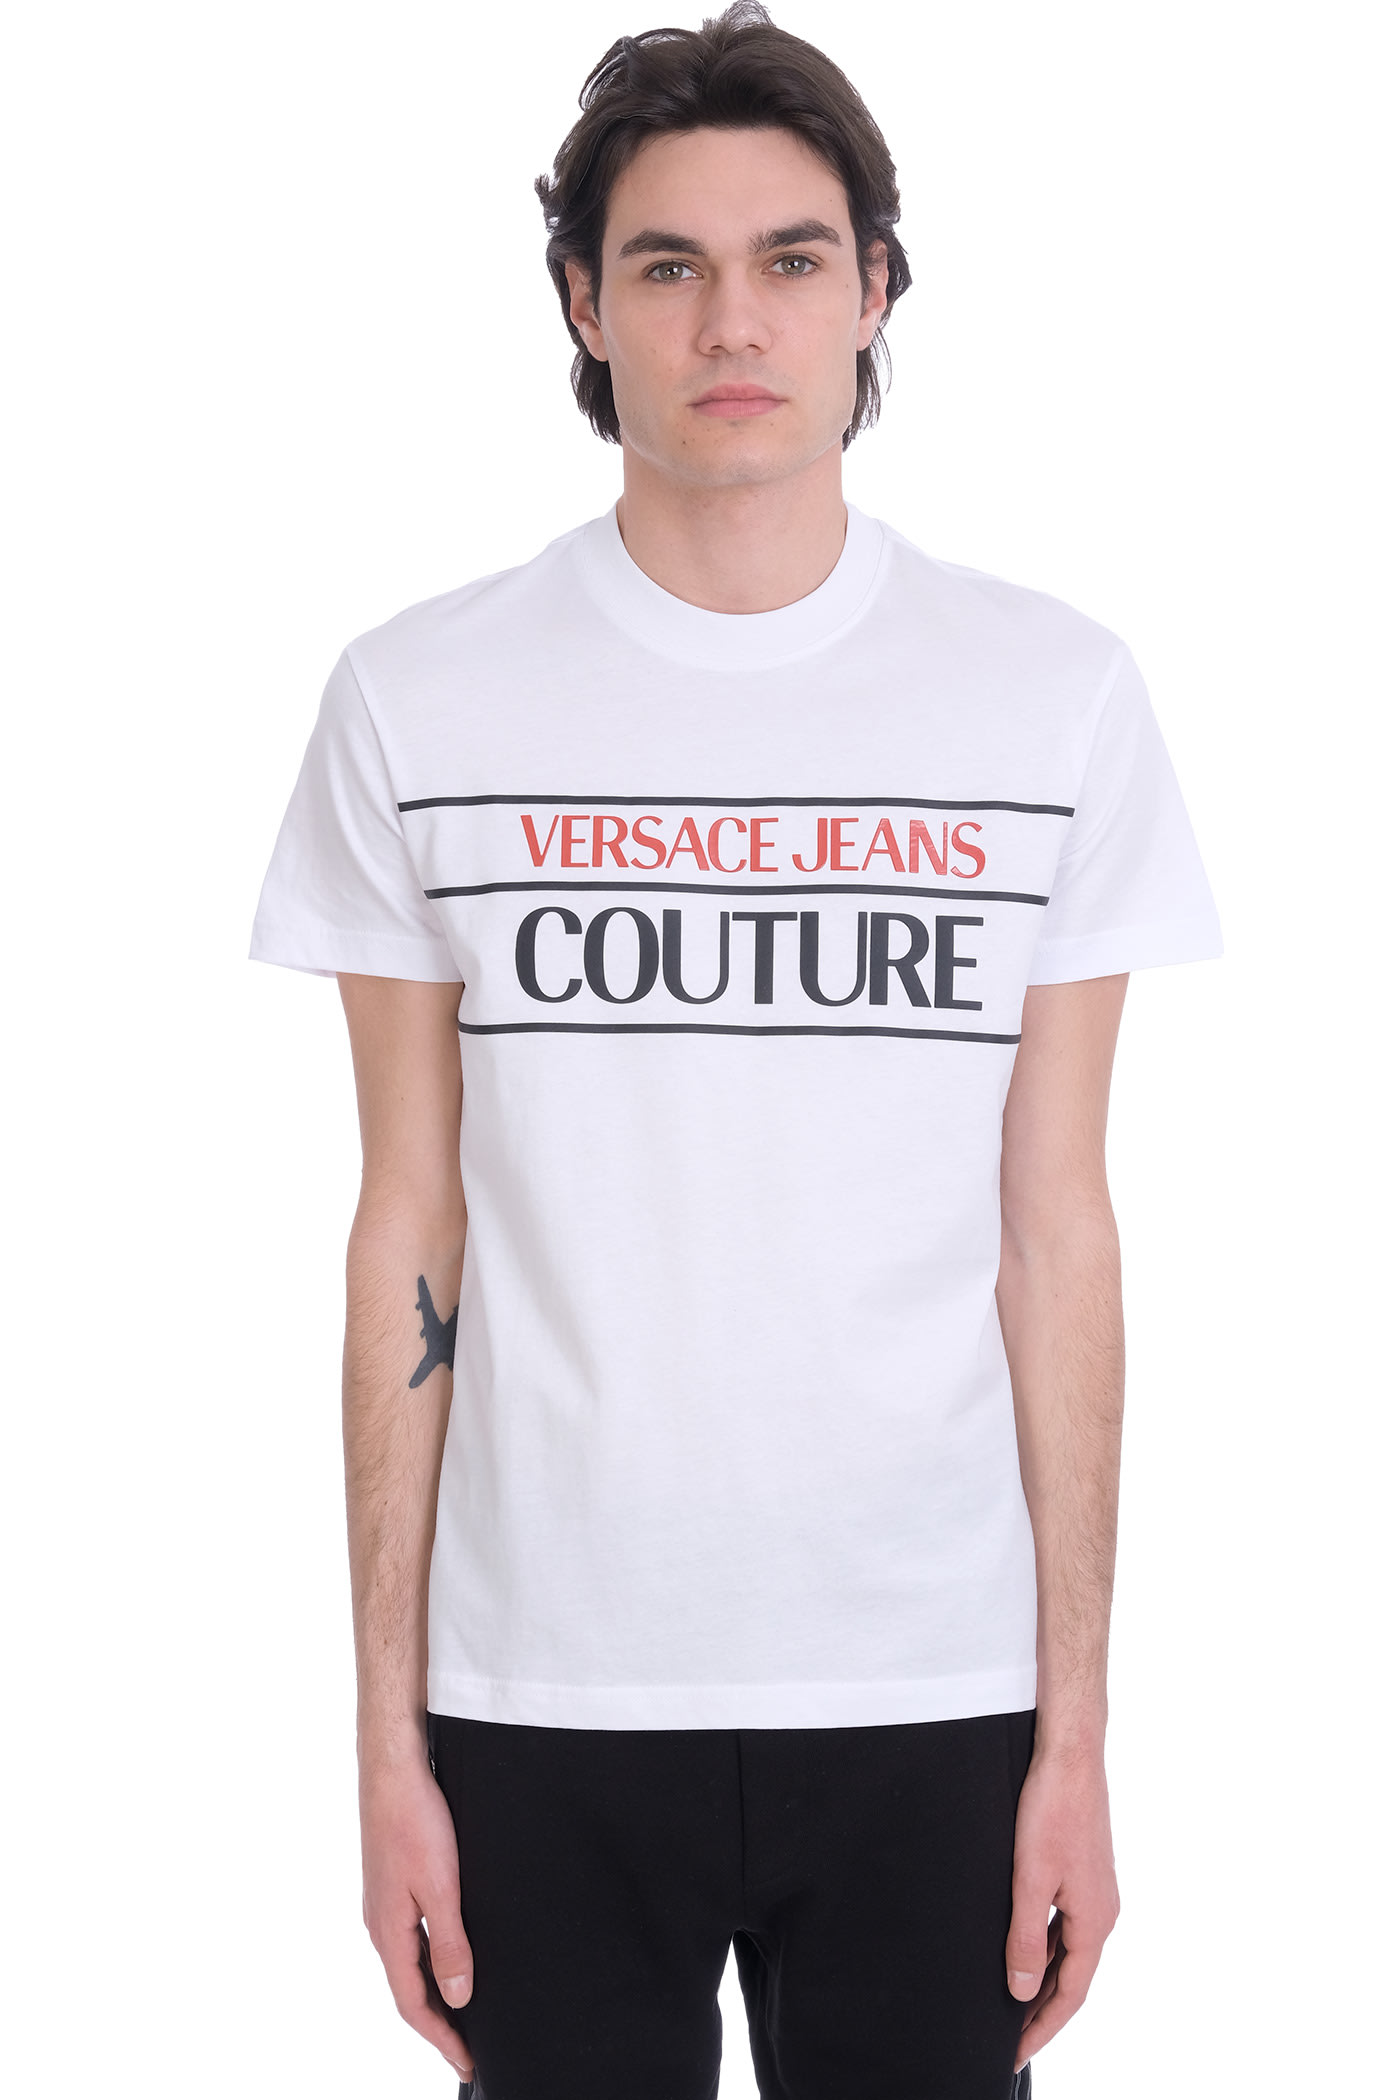 Details about  /Versace Jeans Couture White 100/% Cotton Long Sleeve Polo Shirt